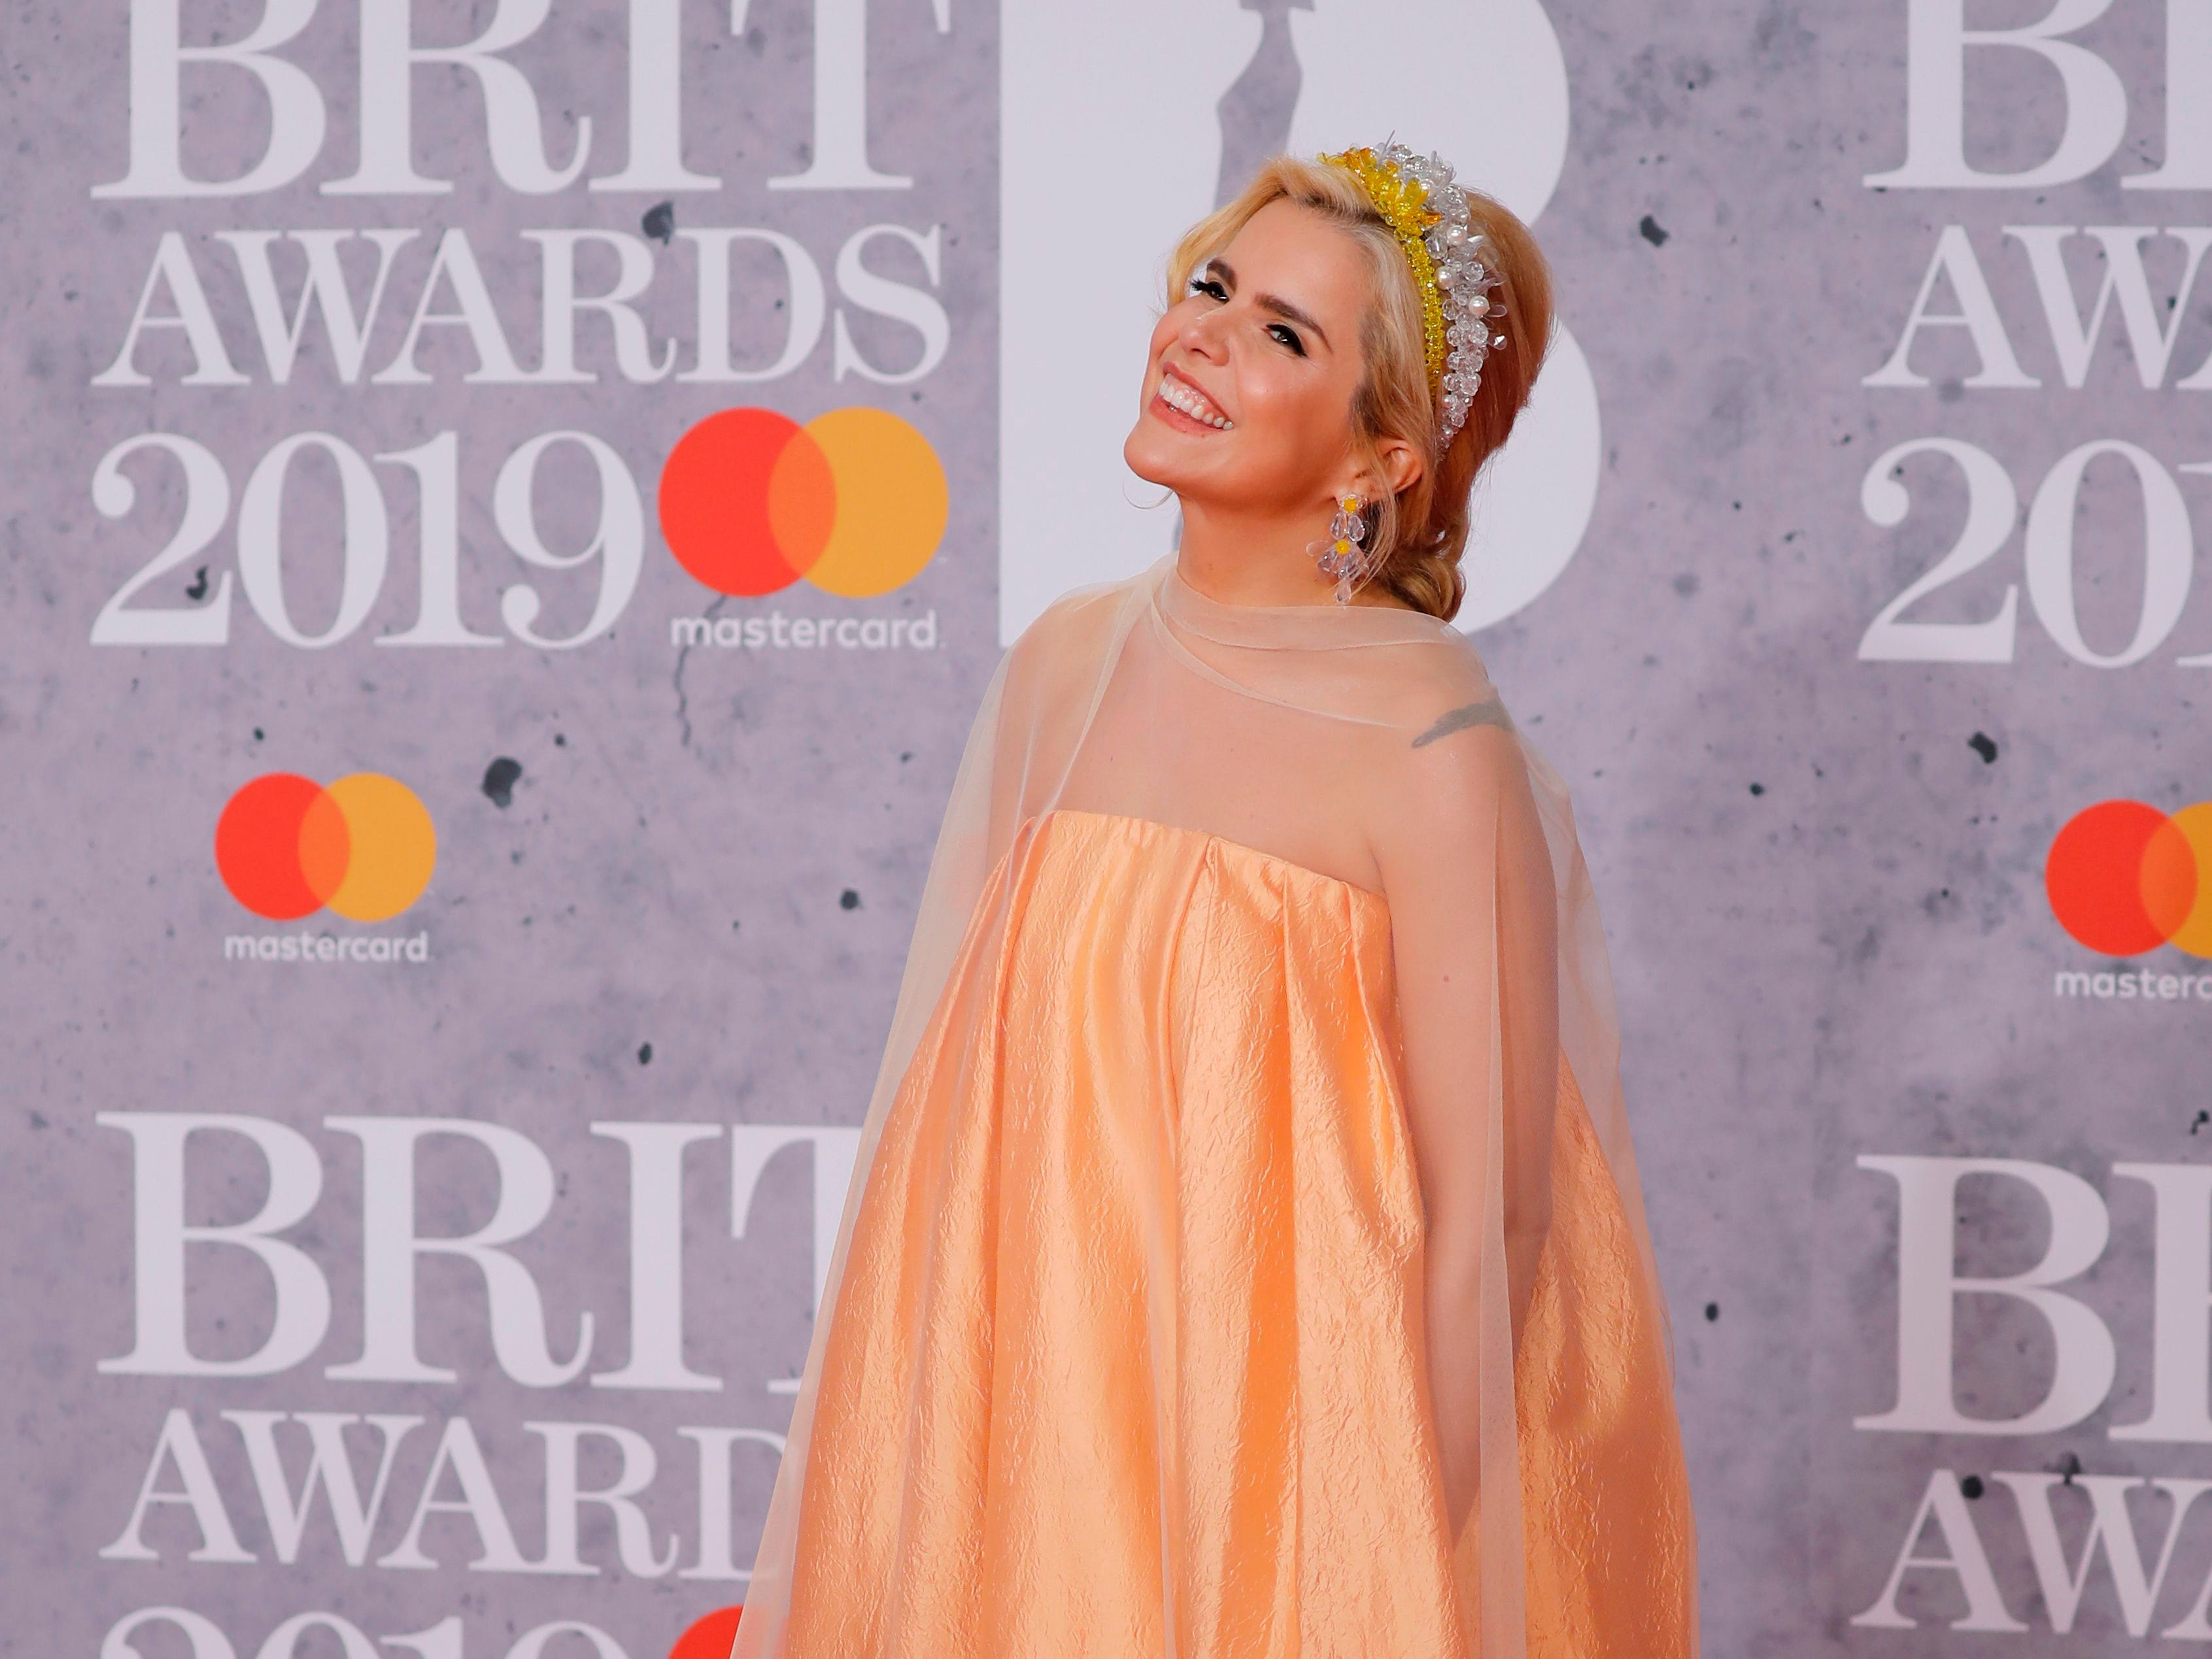 British singer Paloma Faith poses on the red carpet on arrival for the BRIT Awards 2019 in London on February 20, 2019. (Photo by Tolga AKMEN / AFP) / RESTRICTED TO EDITORIAL USE  NO POSTERS  NO MERCHANDISE NO USE IN PUBLICATIONS DEVOTED TO ARTISTSTOLGA AKMEN/AFP/Getty Images ORIG FILE ID: AFP_1DO1PZ